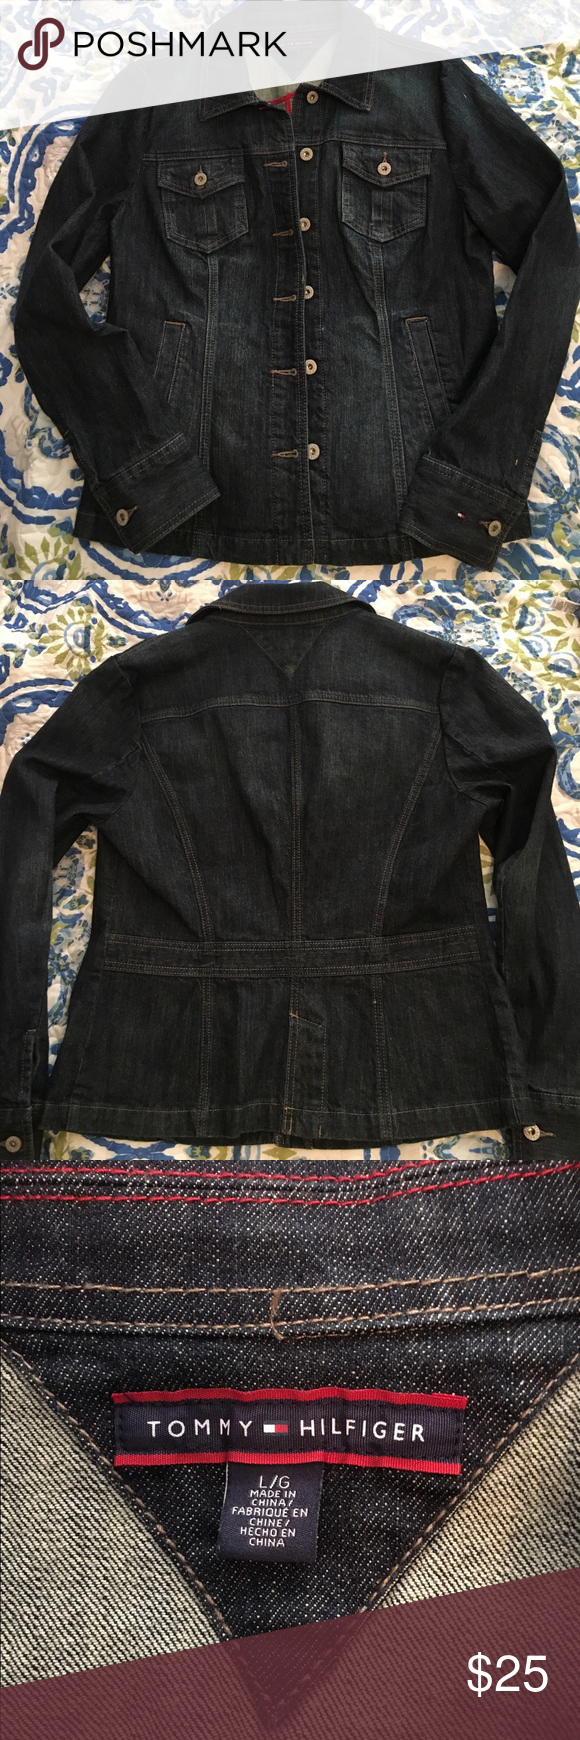 Tommy Hilfiger denim jacket Classic Tommy Hilfiger denim jacket in dark wash. Size large. Excellent condition! Tommy Hilfiger Jackets & Coats Jean Jackets